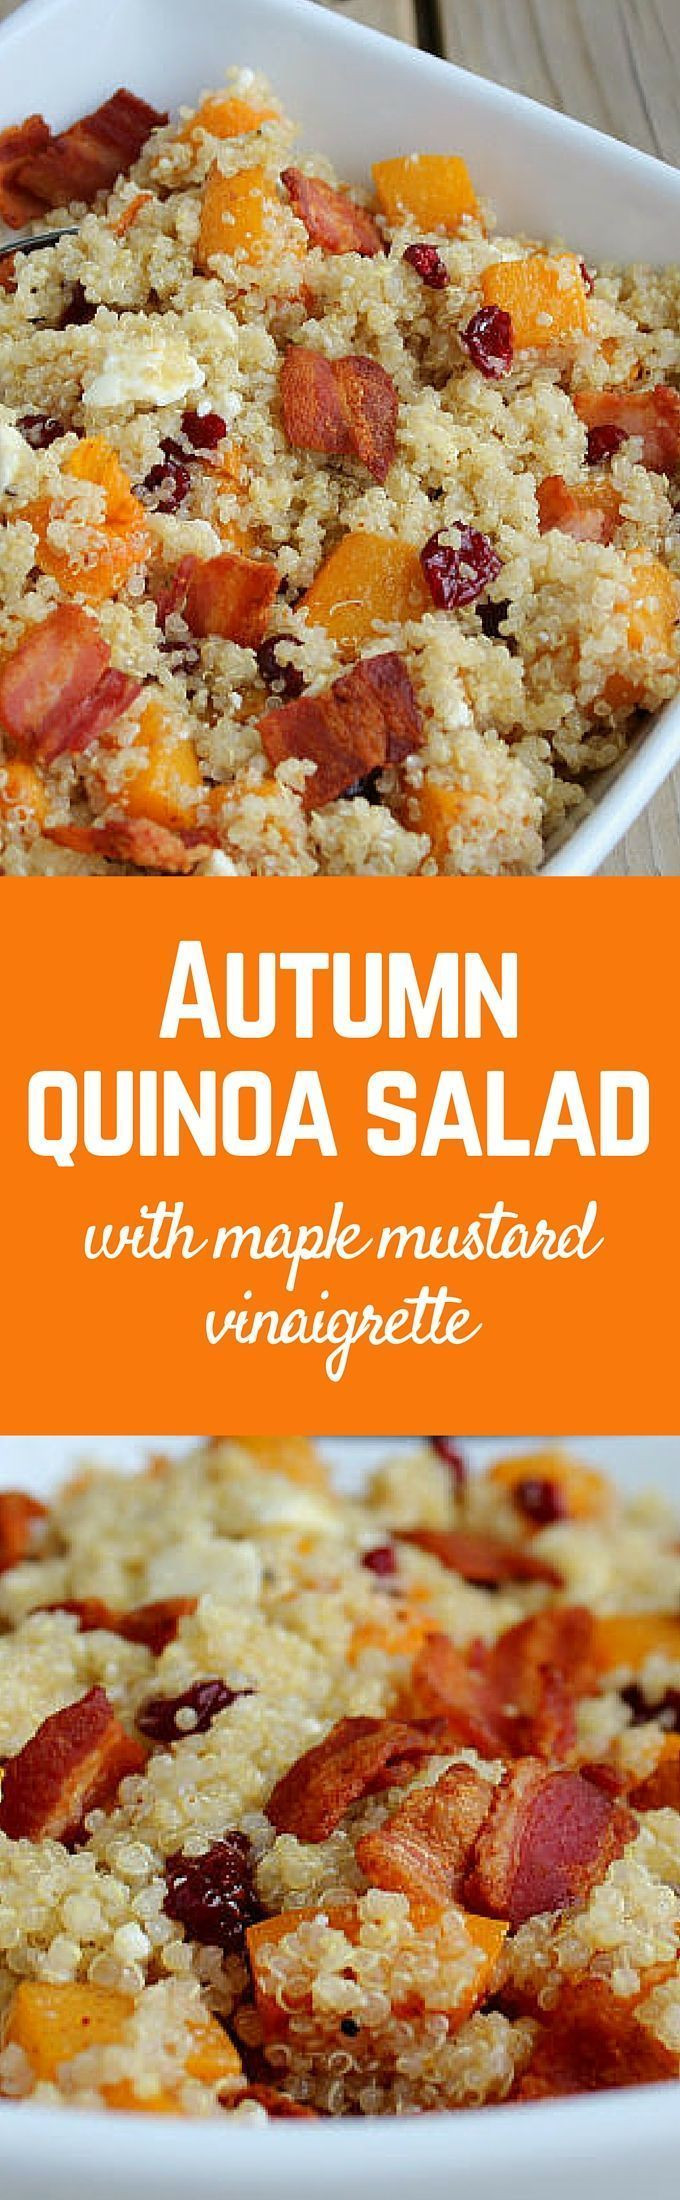 Fall Quinoa Recipes  1000 ideas about Quinoa Salad on Pinterest